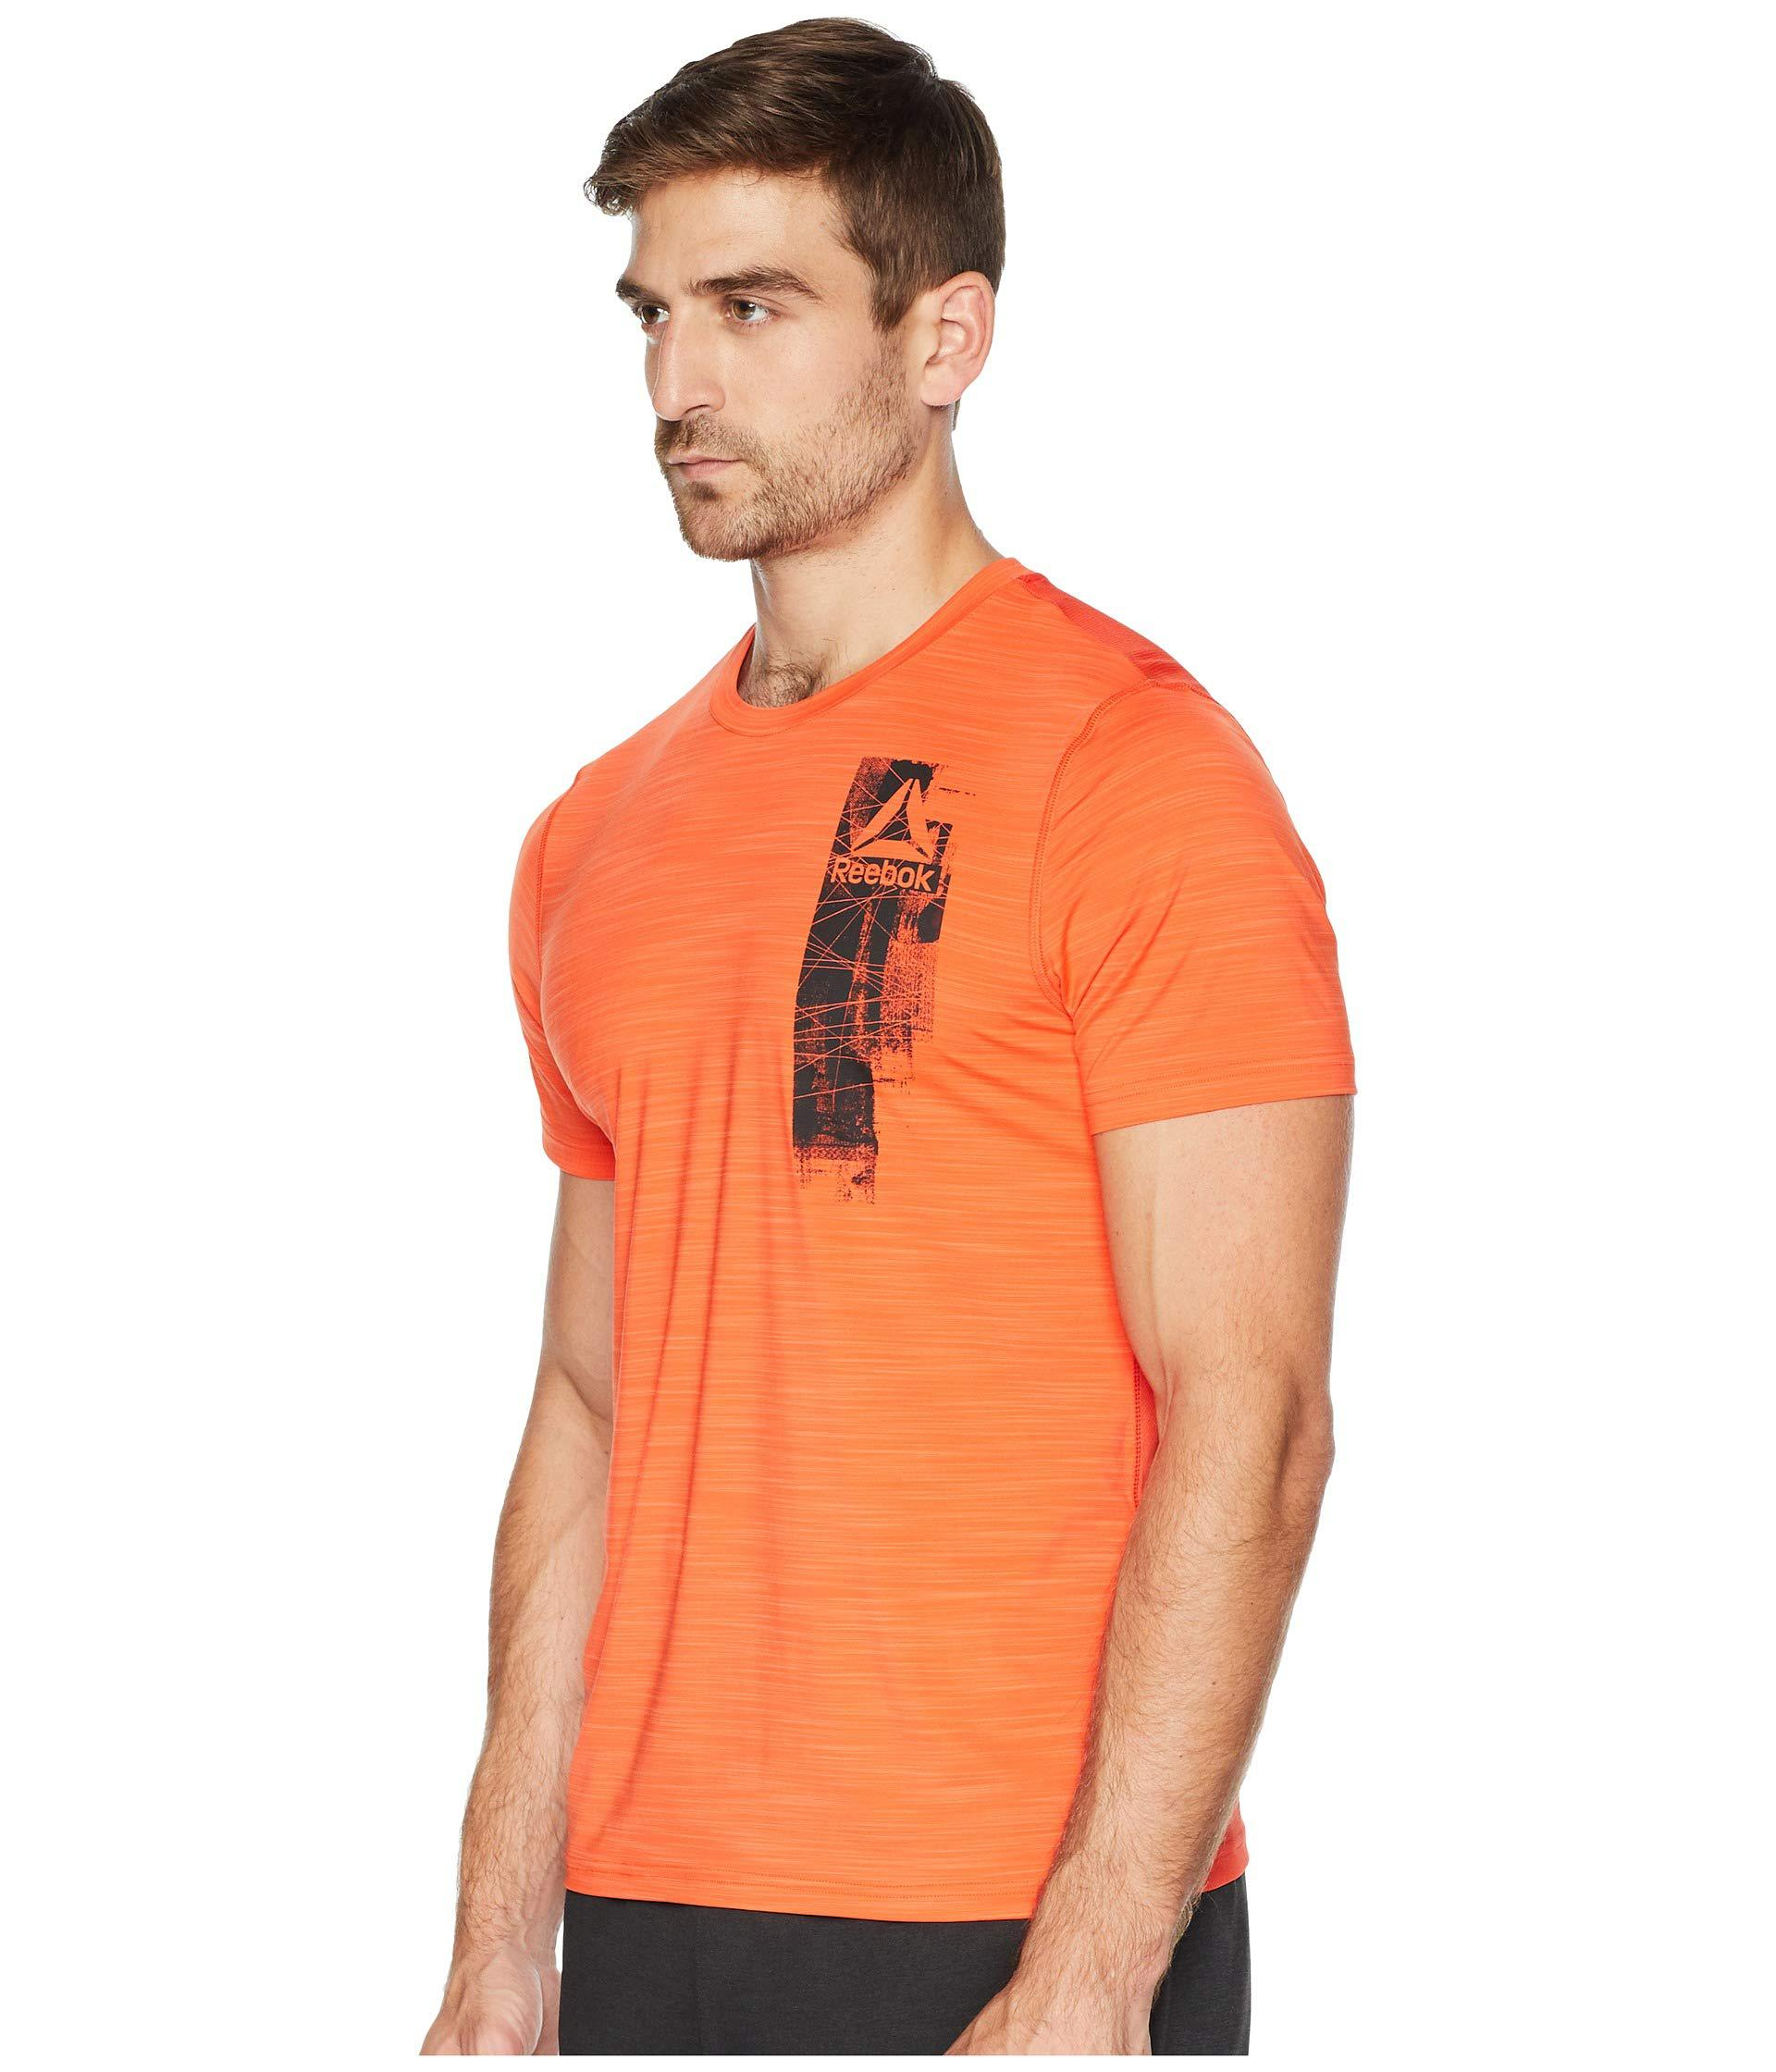 a5b9b6557256c Lyst - Reebok Workout Ready Activchill Graphic Top in Orange for Men - Save  5%